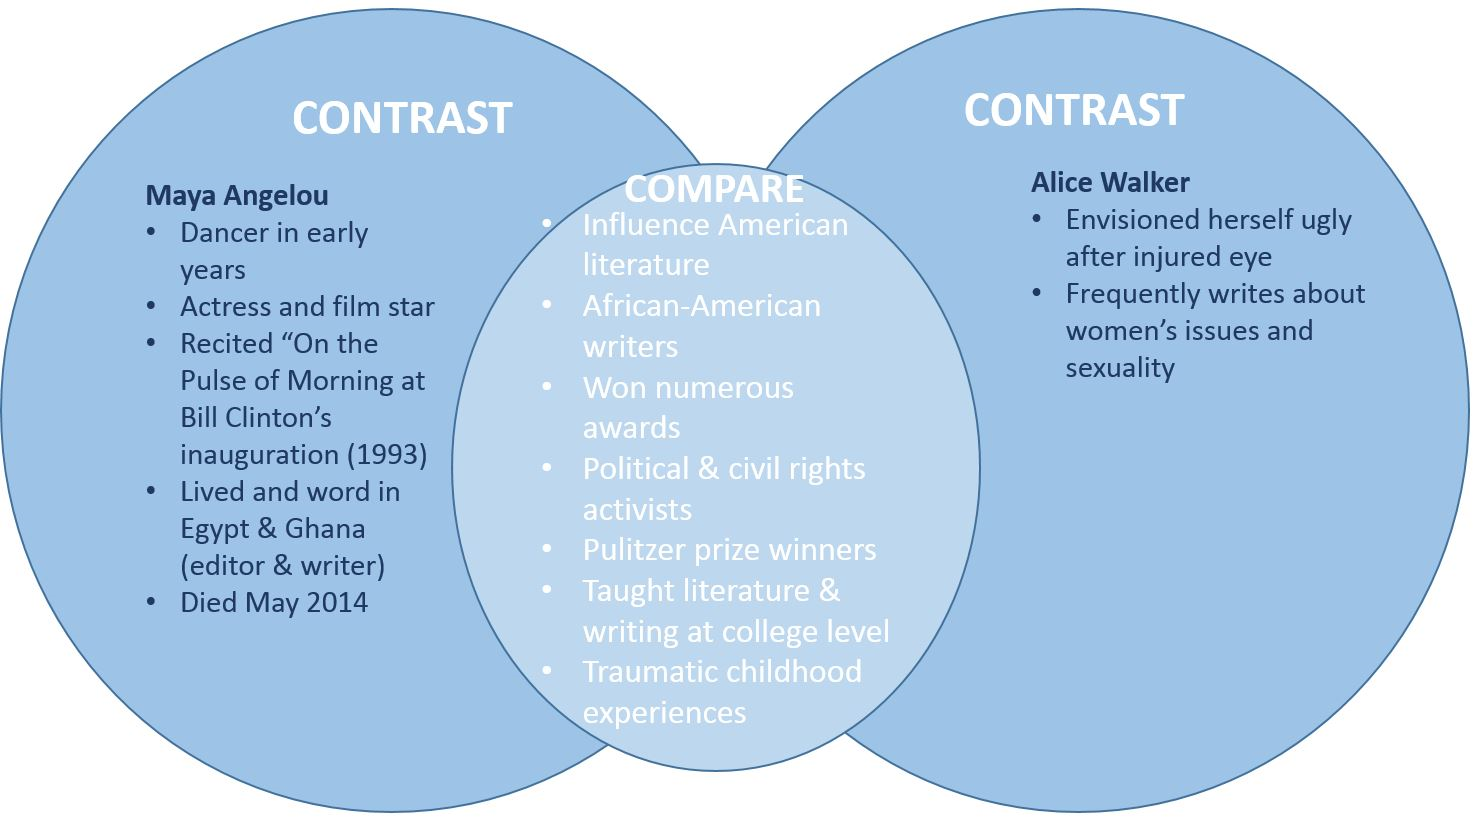 a comparing and contrasting essay In this video, we will discuss the structure and organization of a comparison/contrast essay students will learn the different styles of comparing and contrasting, and after the video, will be.